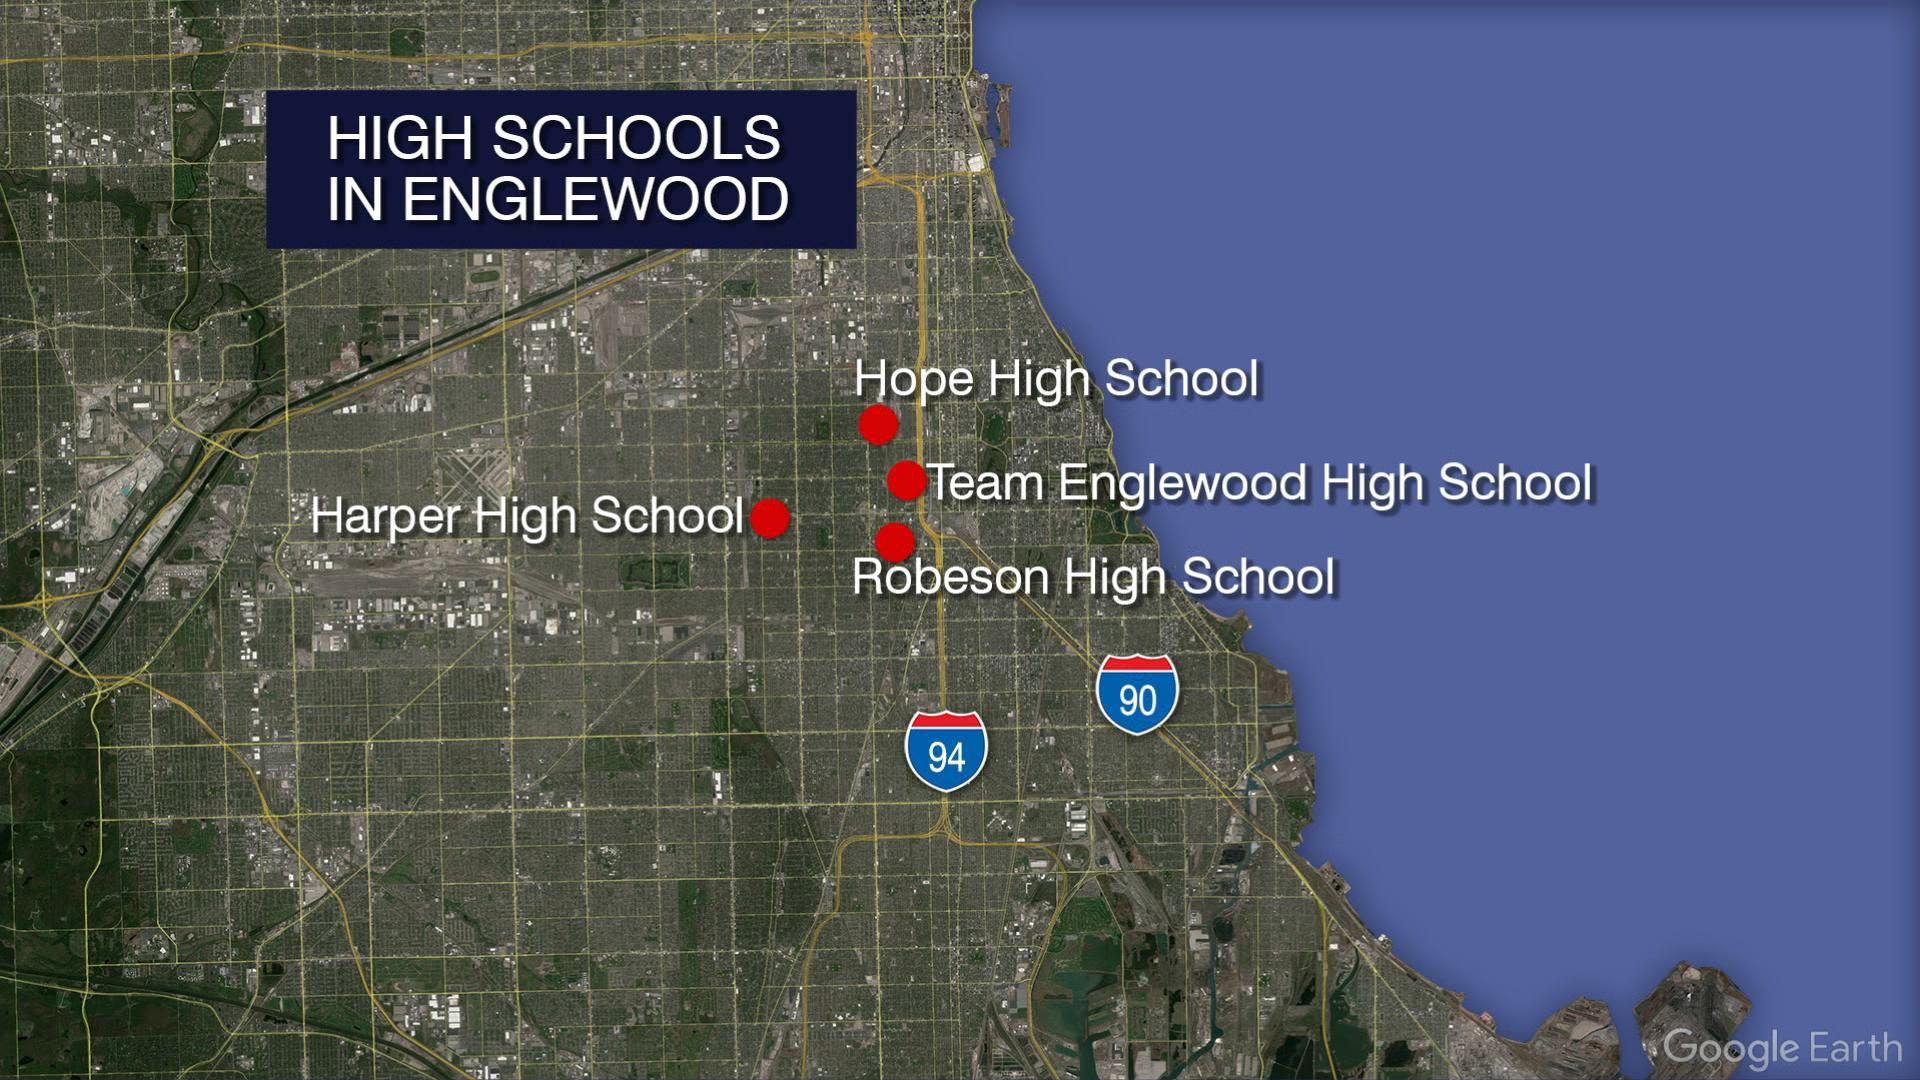 CTU Calls for School Investments, Not Closures, in Letter to